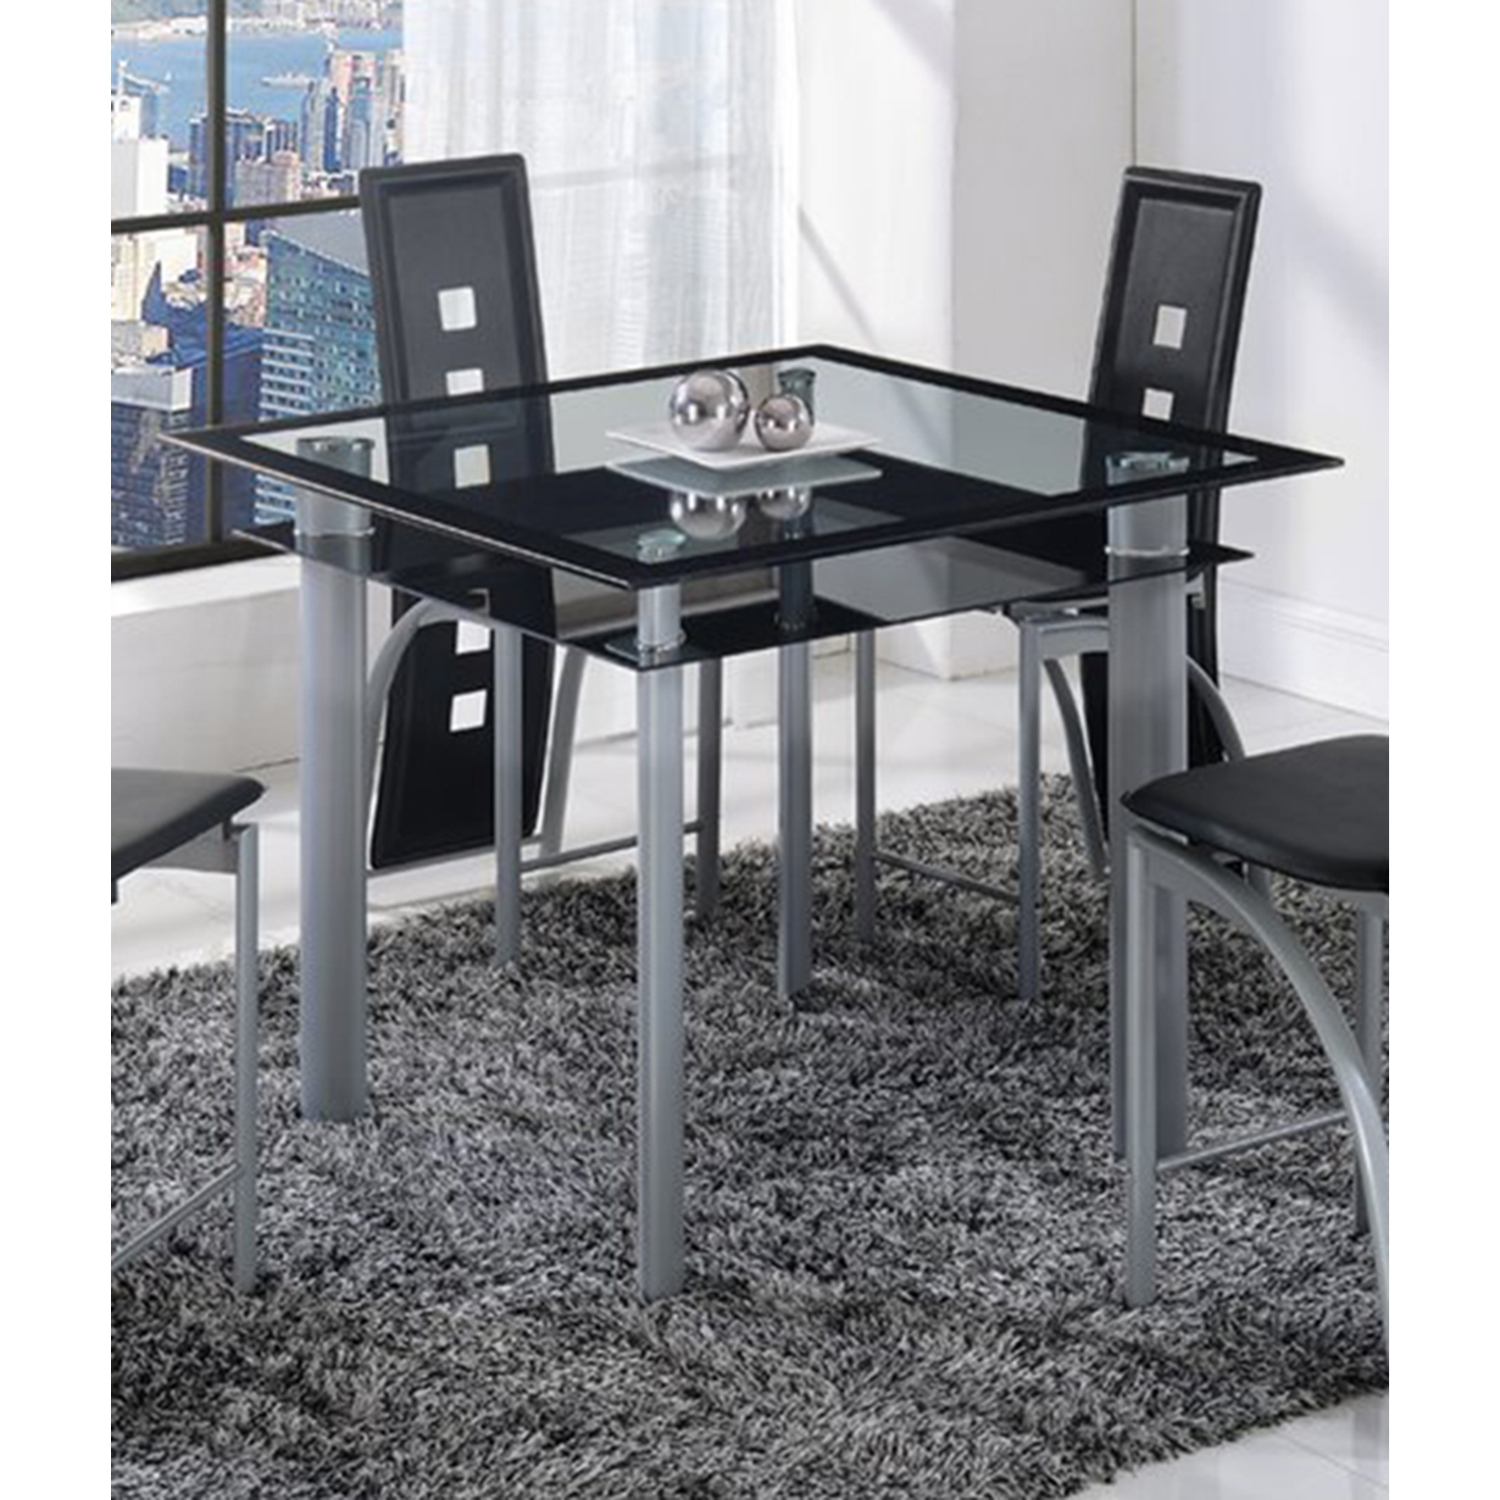 Sophia 5-Piece Counter Height Dining Set in Black - GLO-D1058B-M-SET